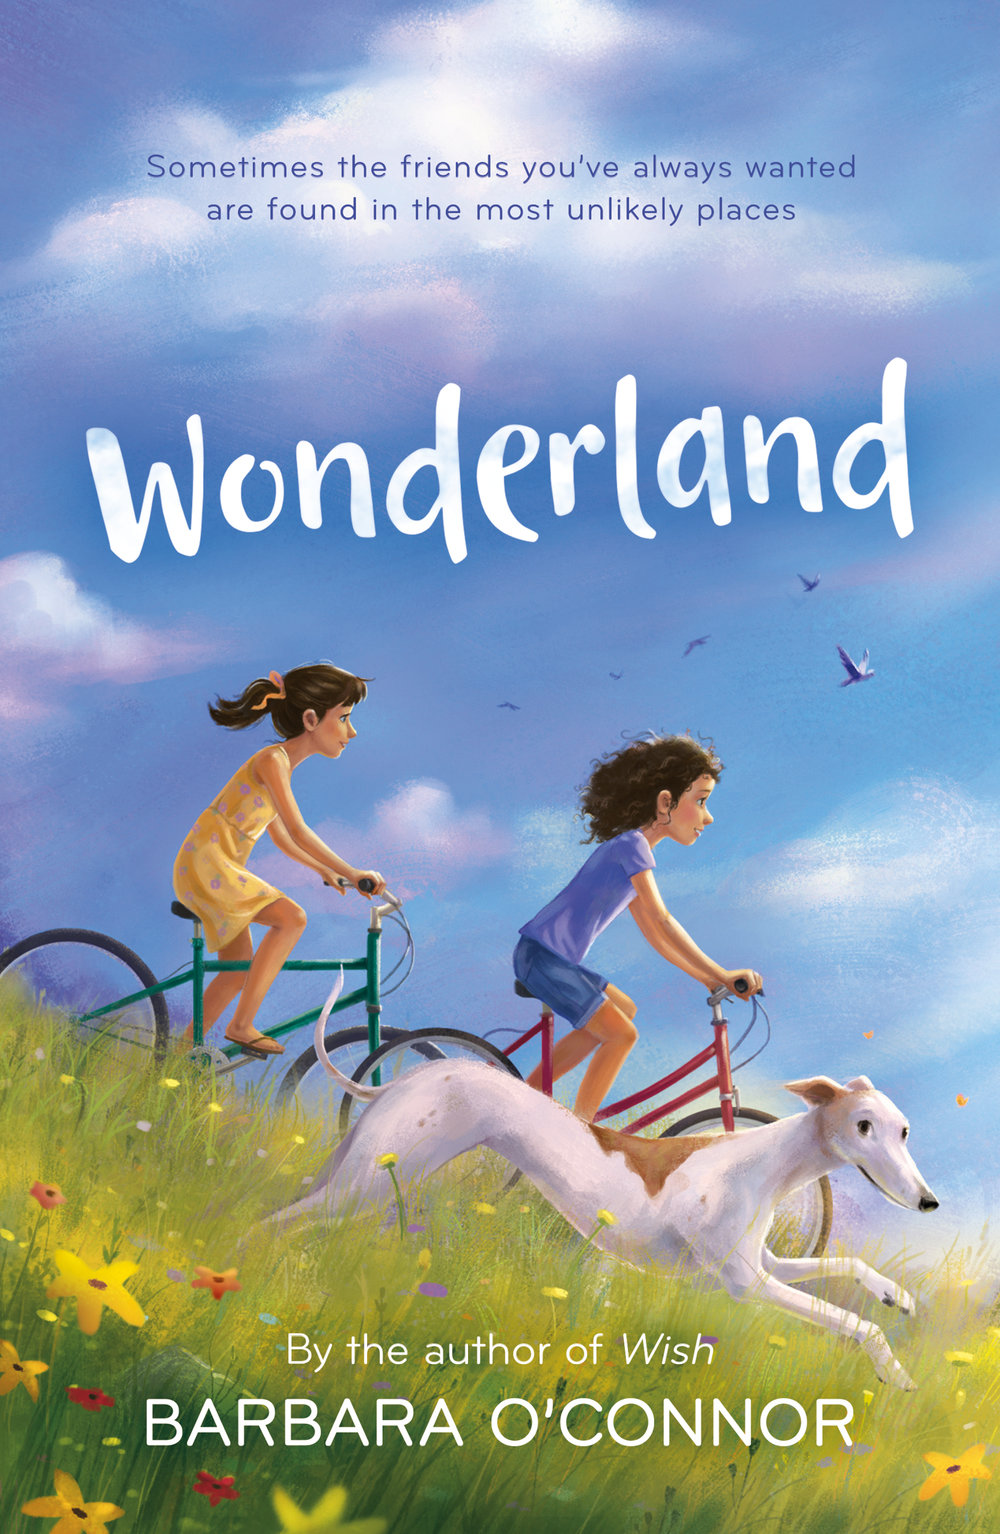 Wonderland , Barbara O'Connor  For Farrar, Straus and Giroux BYR. Illustration by  Jen Bricking .